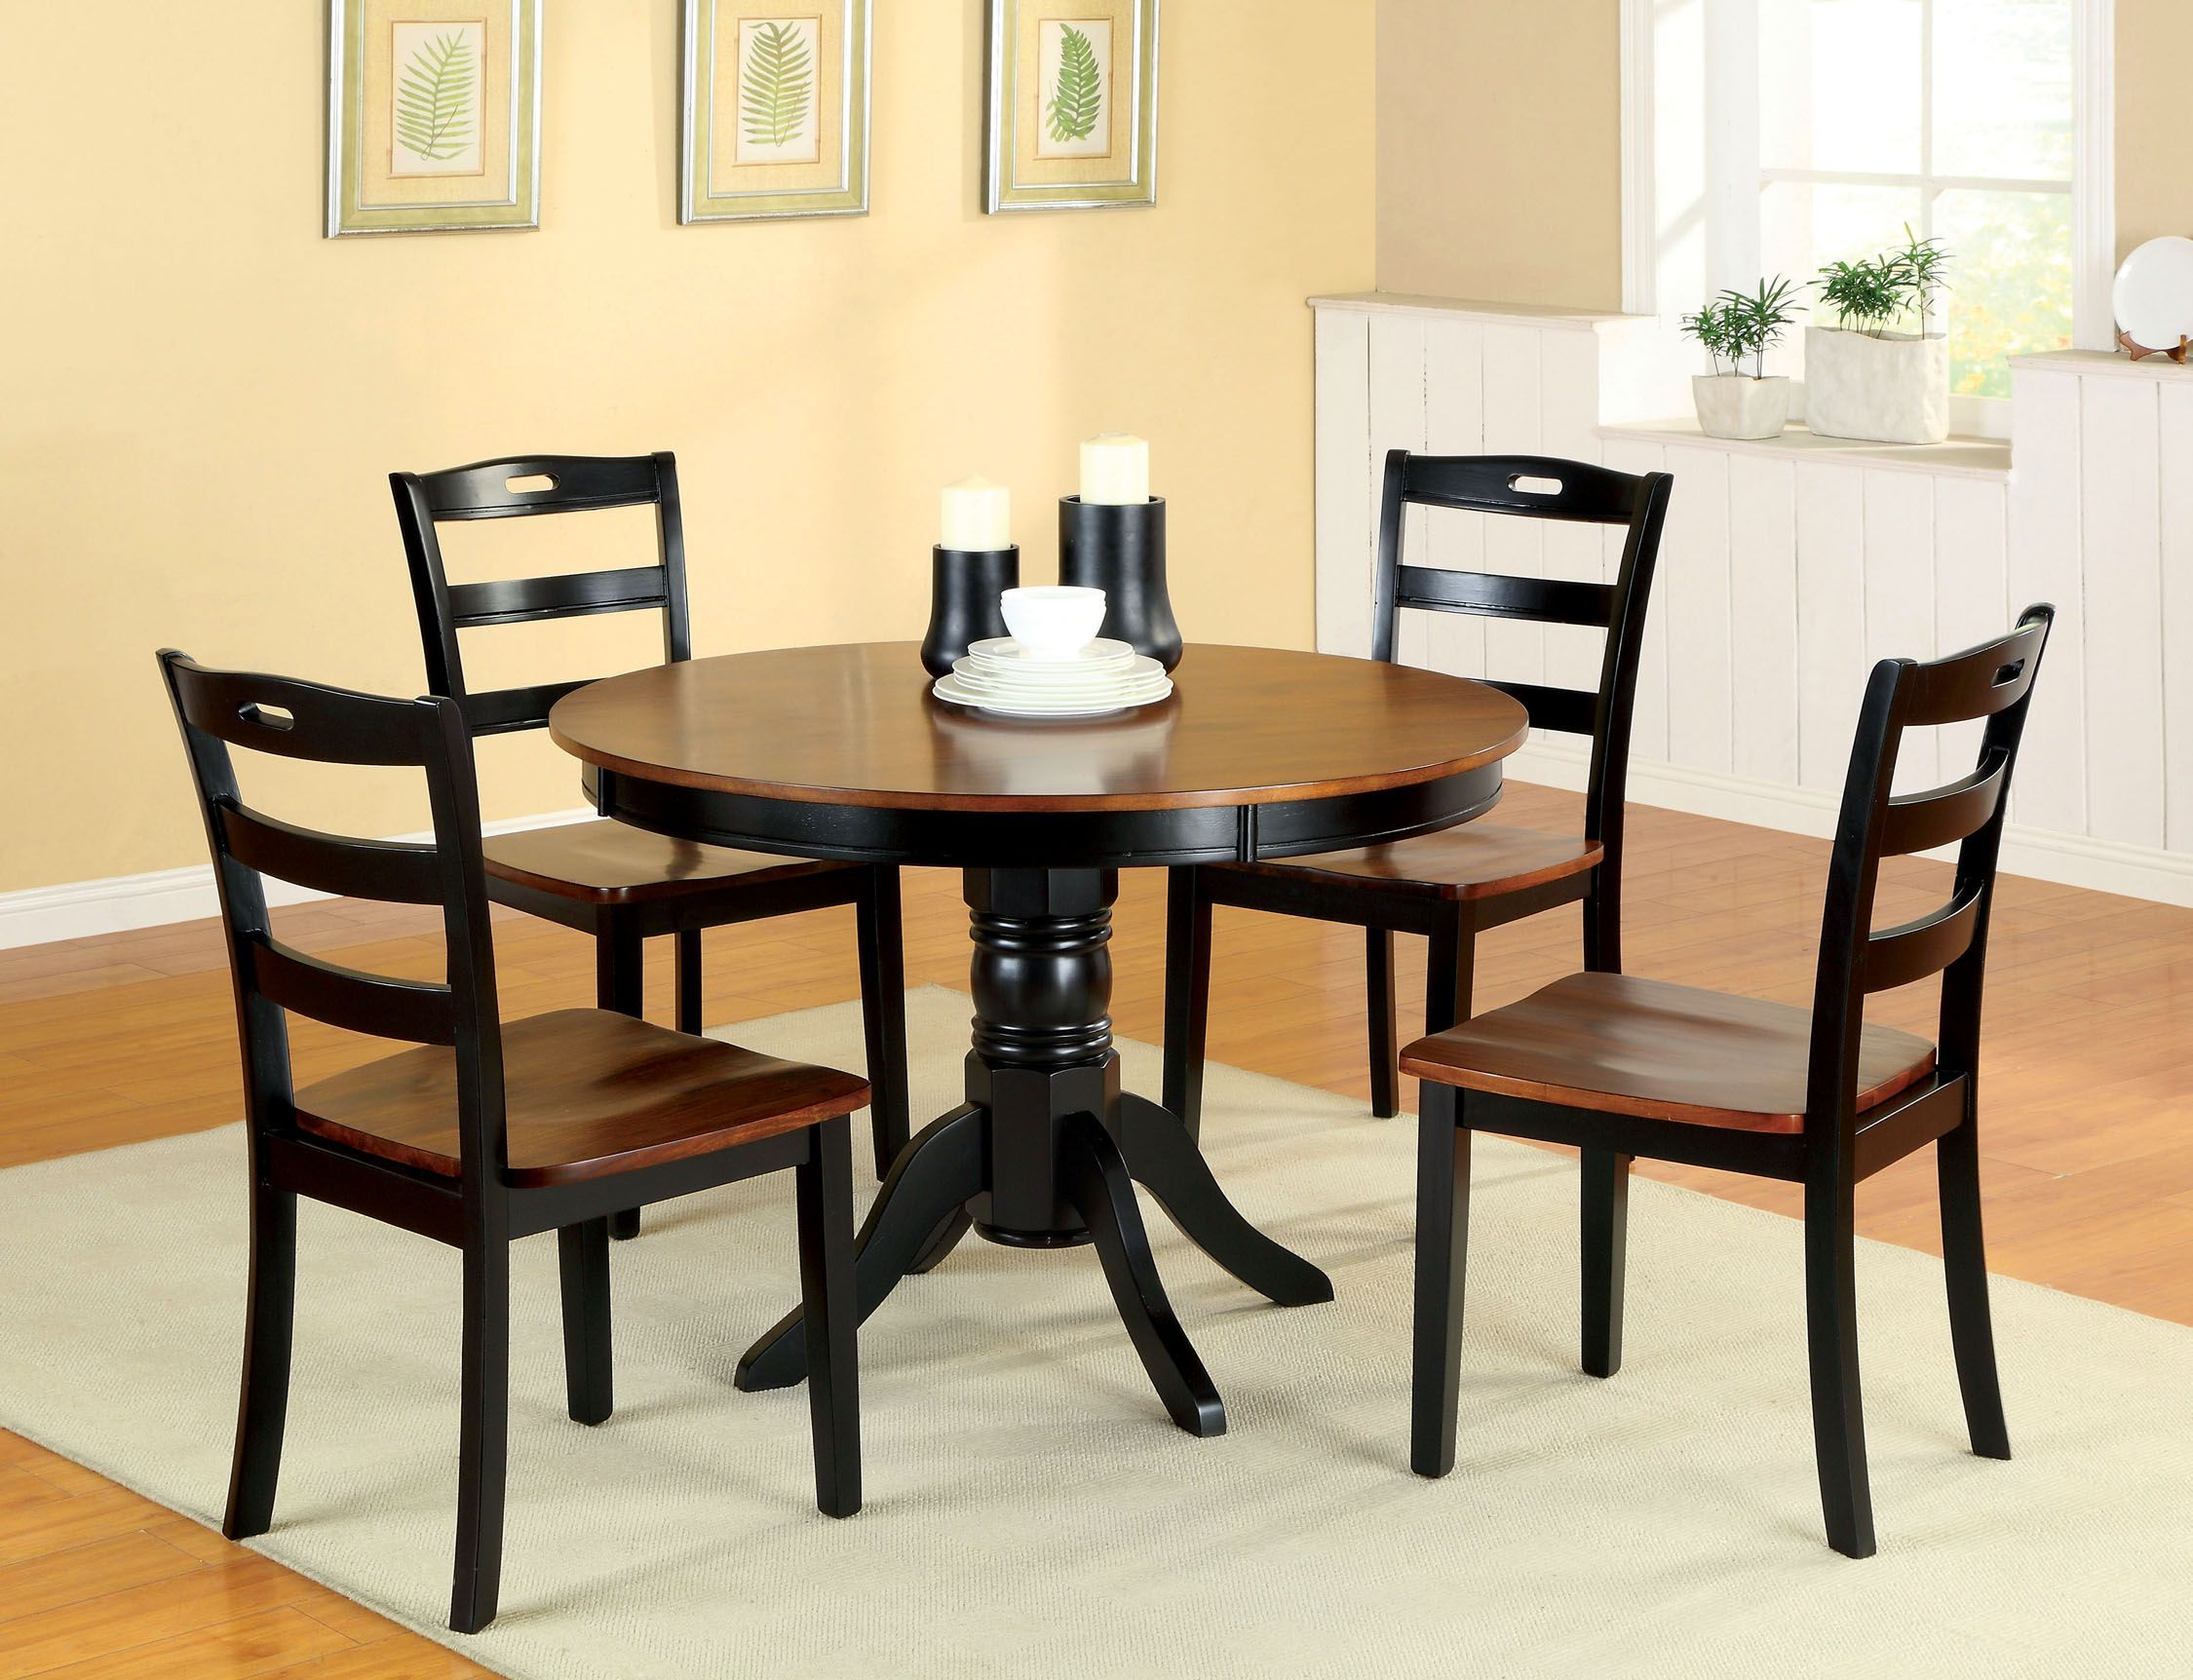 Pin by vic mccall on Creativos   Cheap dining room table, Round ...